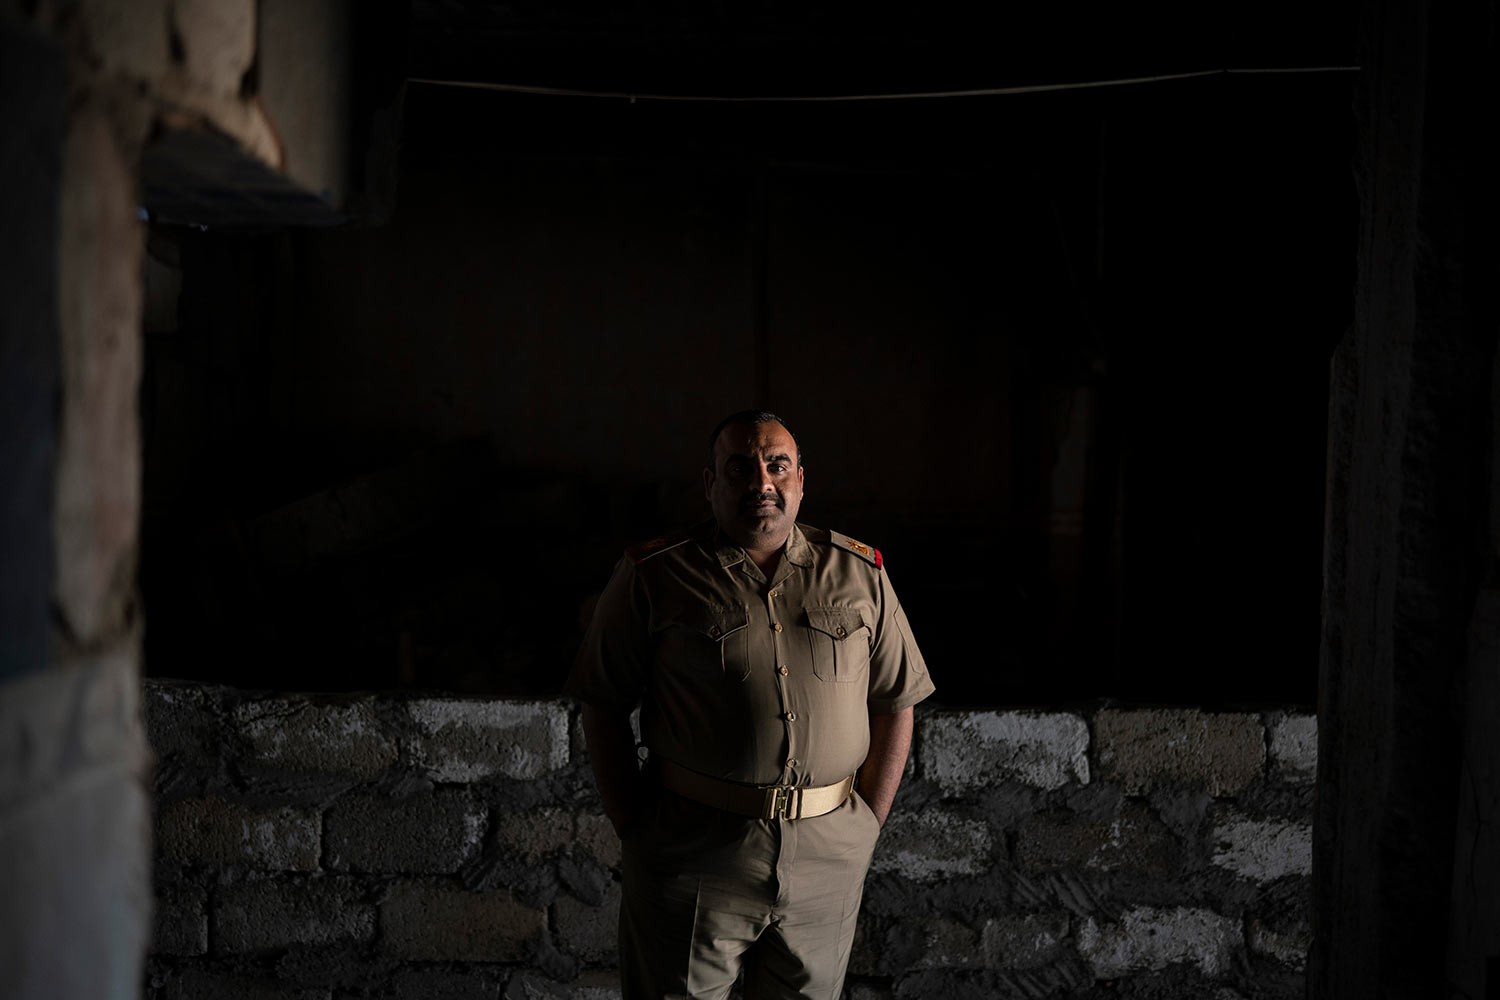 In this April 9, 2019 photo, Iraqi army 20th division Major Khalid Abdullah poses for a portrait in Badoush, Iraq. His battalion is permanently based in the area as a peace keeping force. They man checkpoints and carry out raids to identify and arrest remaining Islamic State militants. (AP Photo/Felipe Dana)